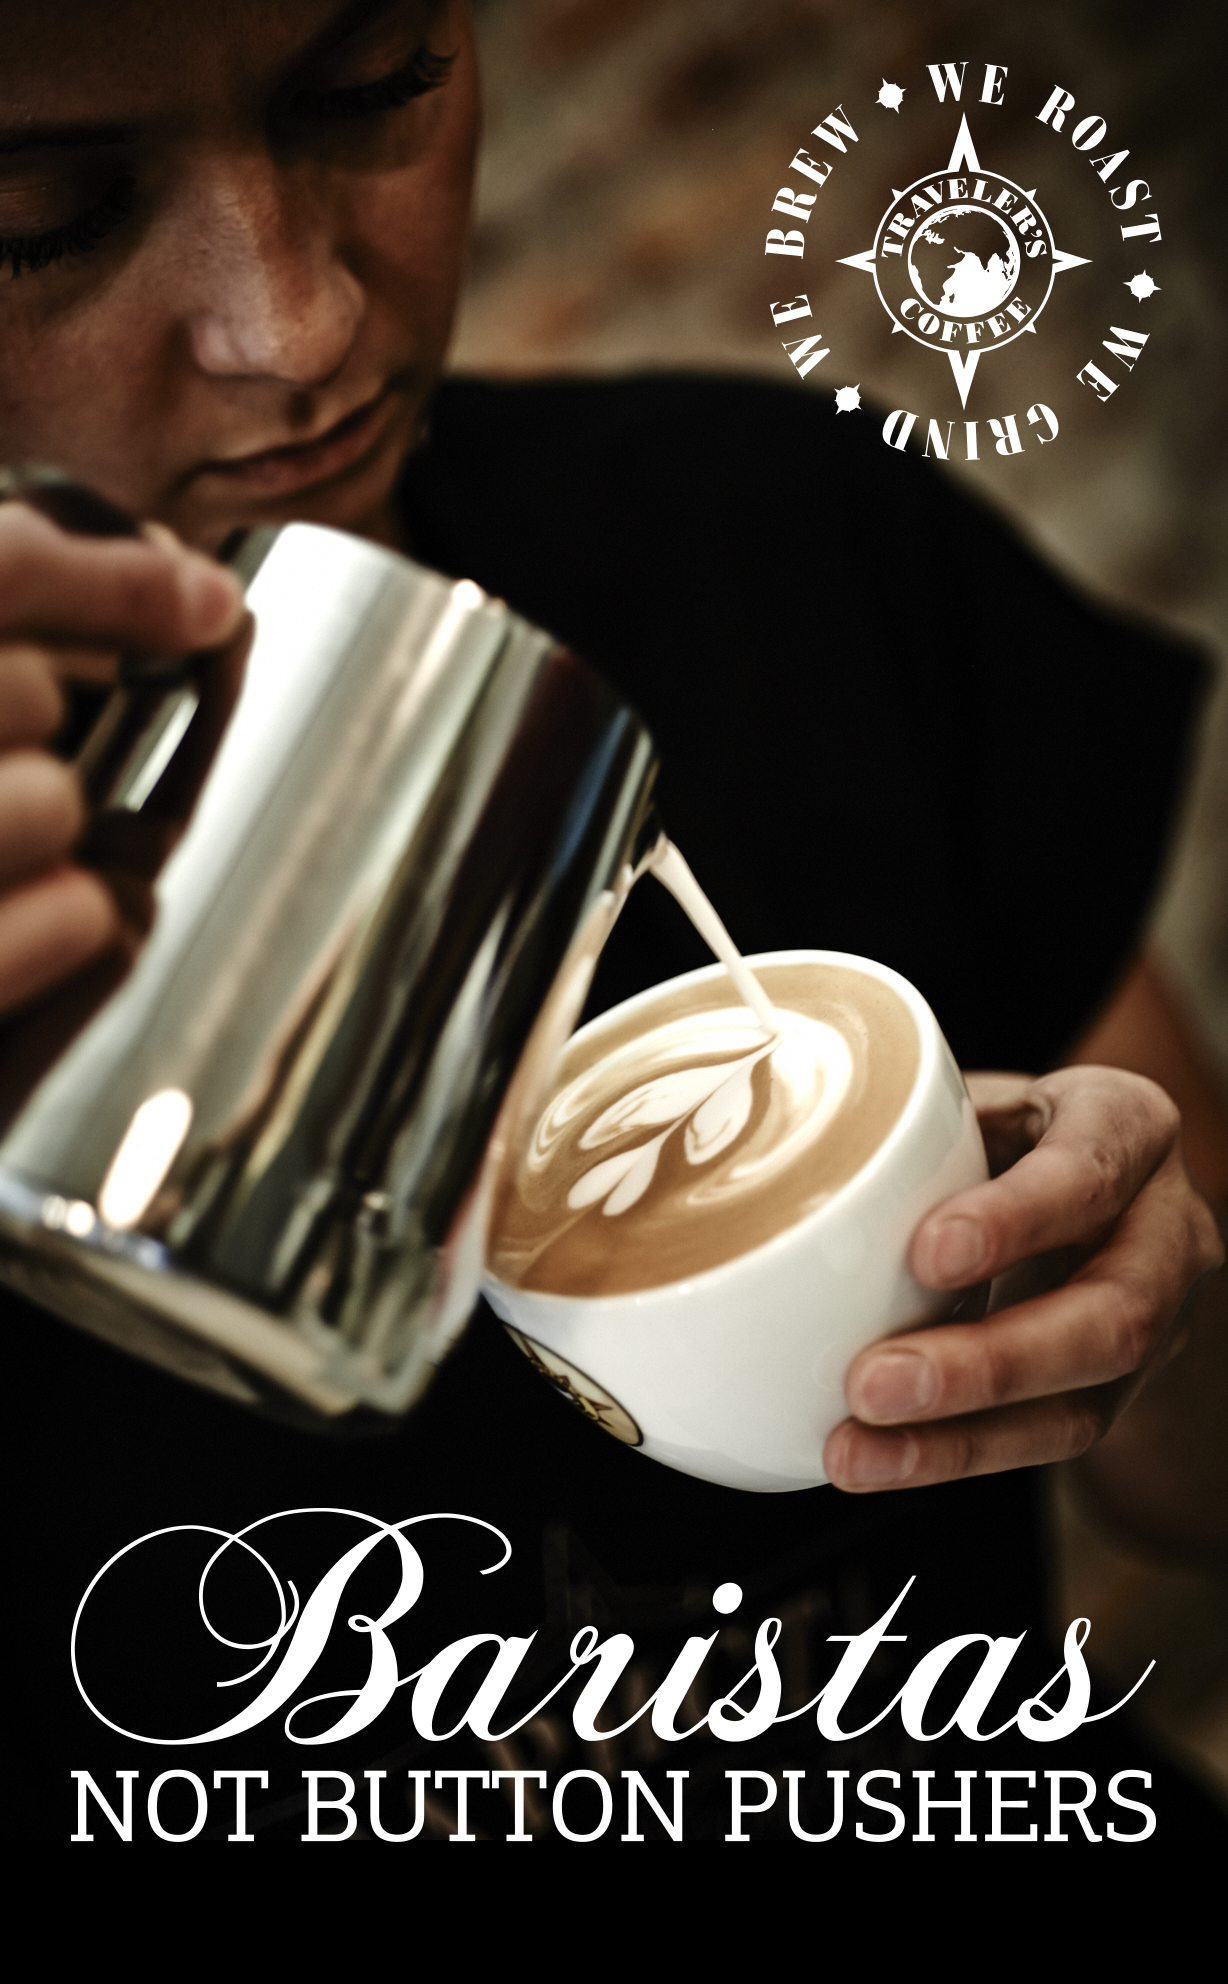 coffee graphic design example